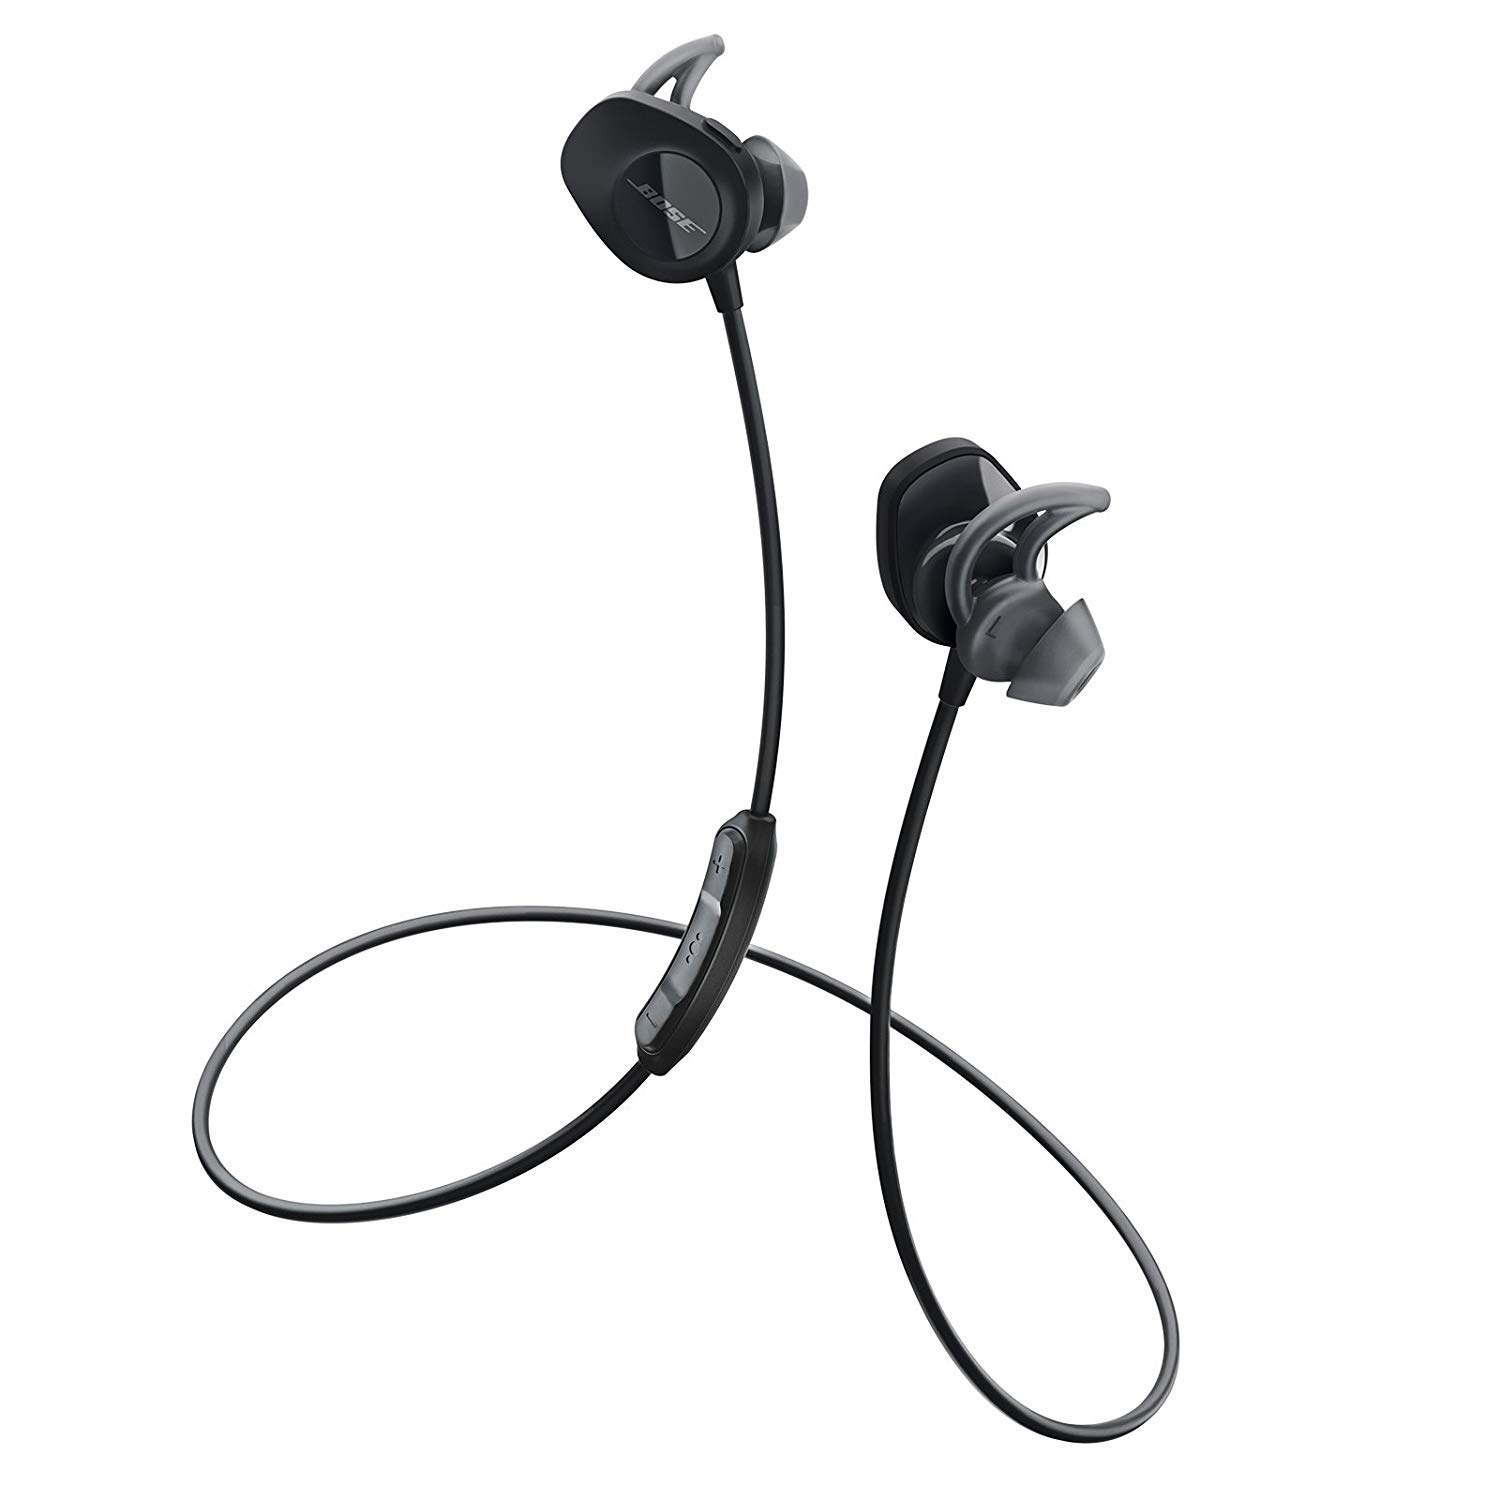 888f30285d2 Bose SoundSport Wireless Headphones (Black): Buy Bose SoundSport Wireless  Headphones (Black) Online at Low Price in India - Amazon.in